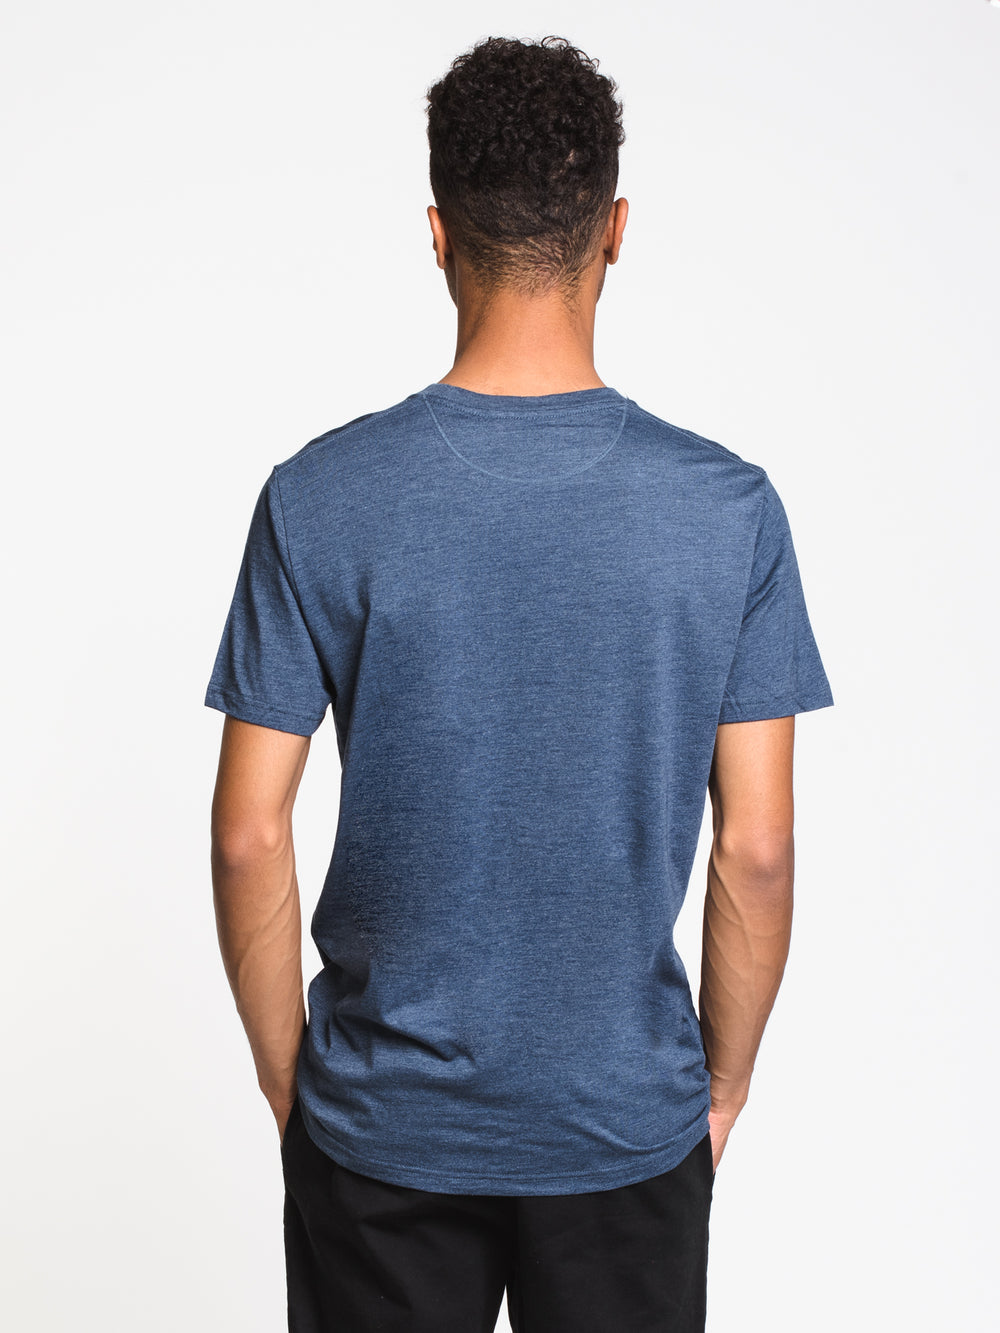 MENS SUPPORT CLASSIC T - OCEAN HTHR